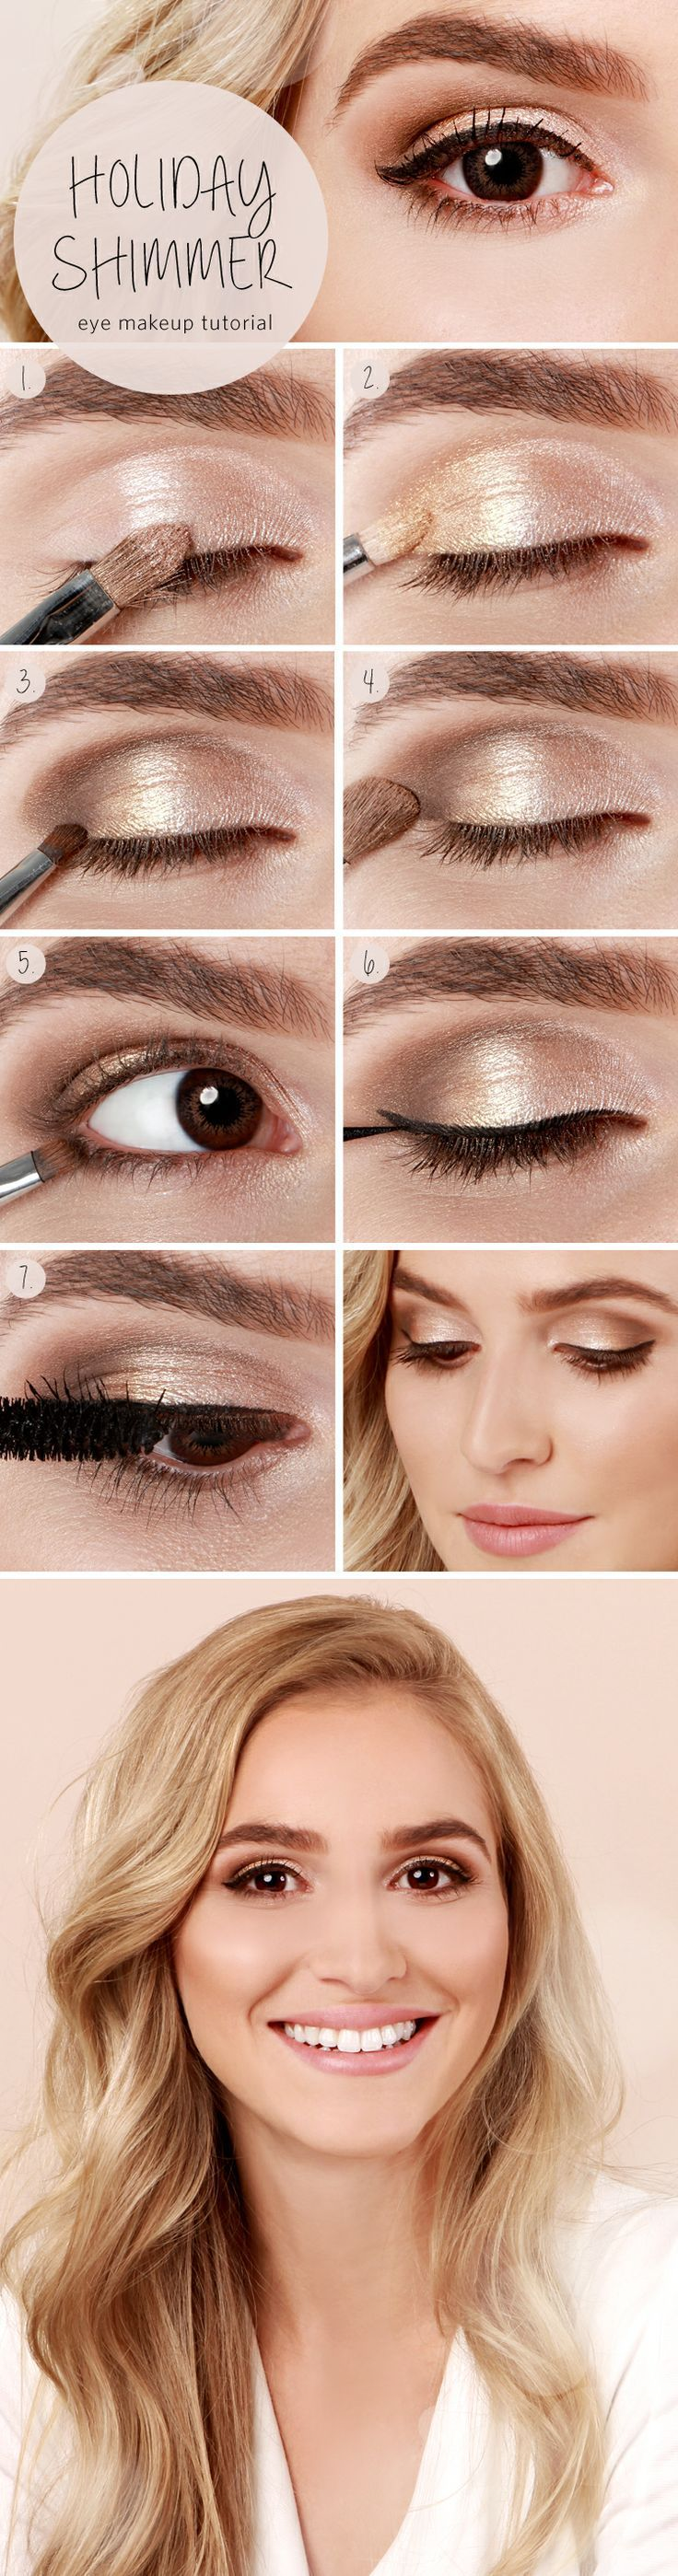 10 Holiday Makeup Tutorials for Pretty Girls - Pretty Designs